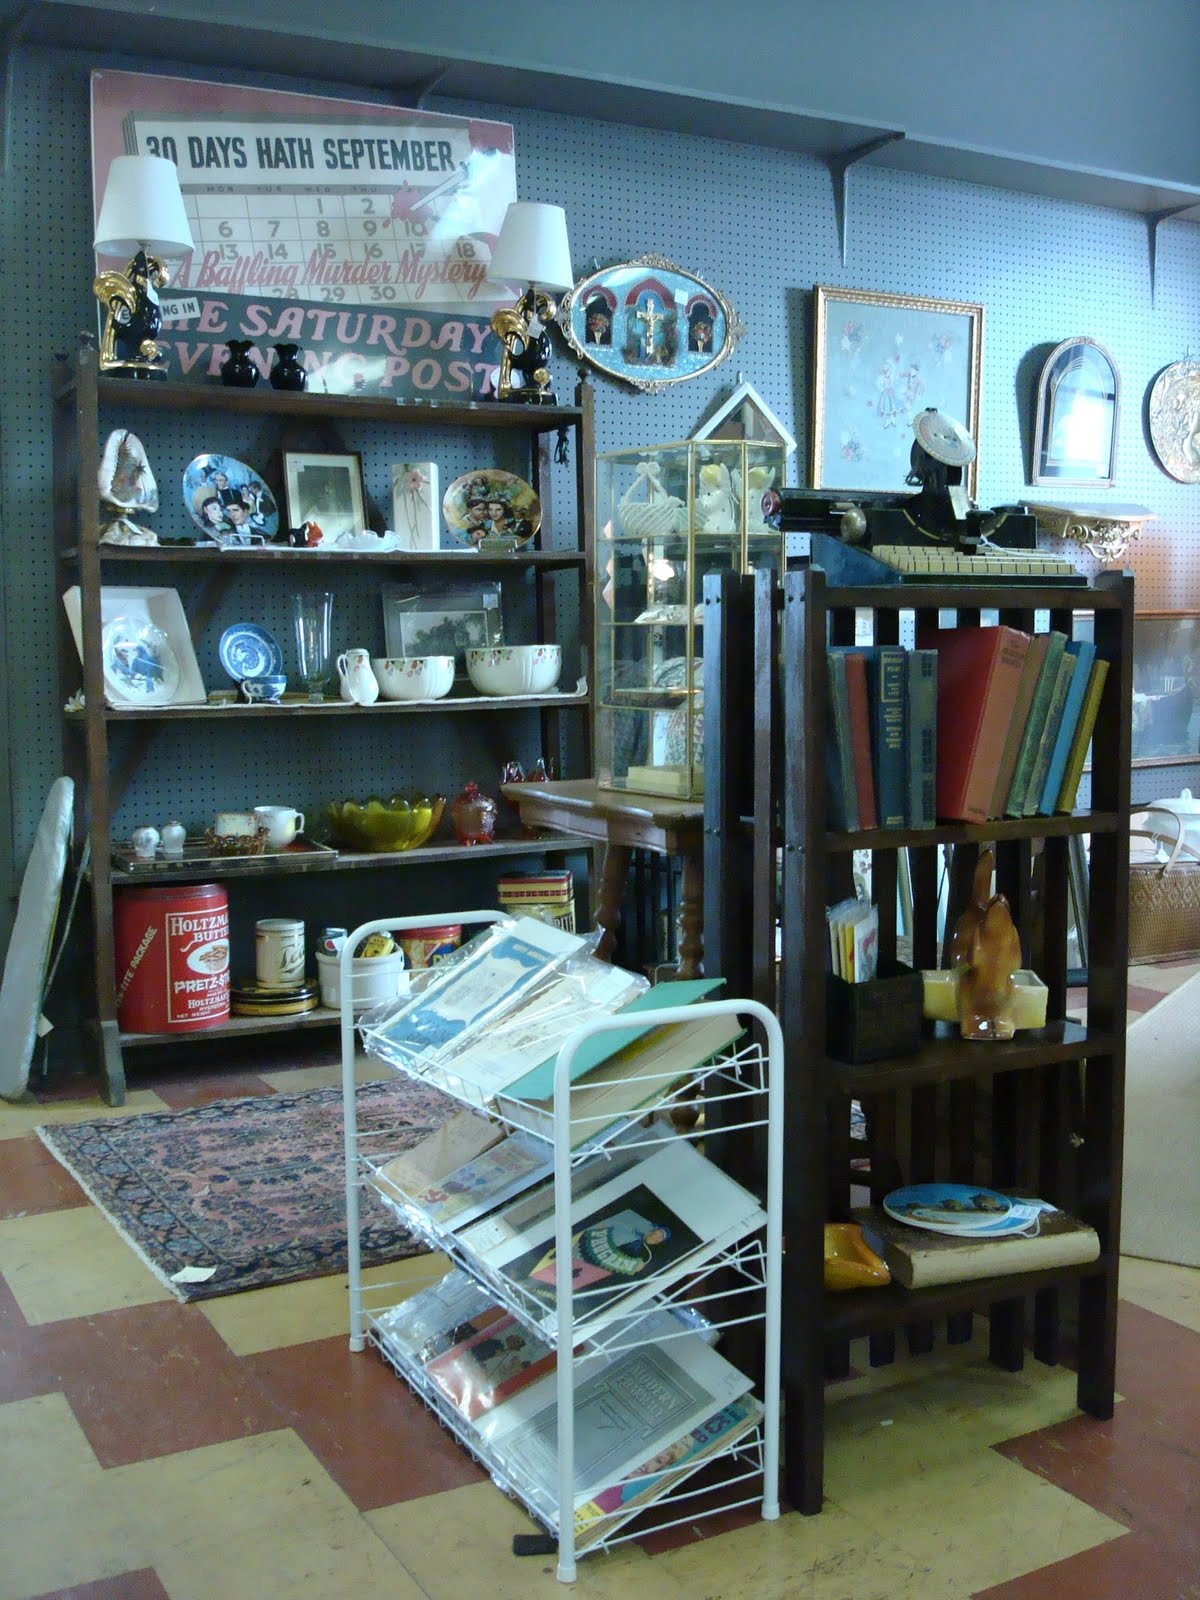 antique stores columbus ohio Greater Columbus Antique Mall antique stores columbus ohio